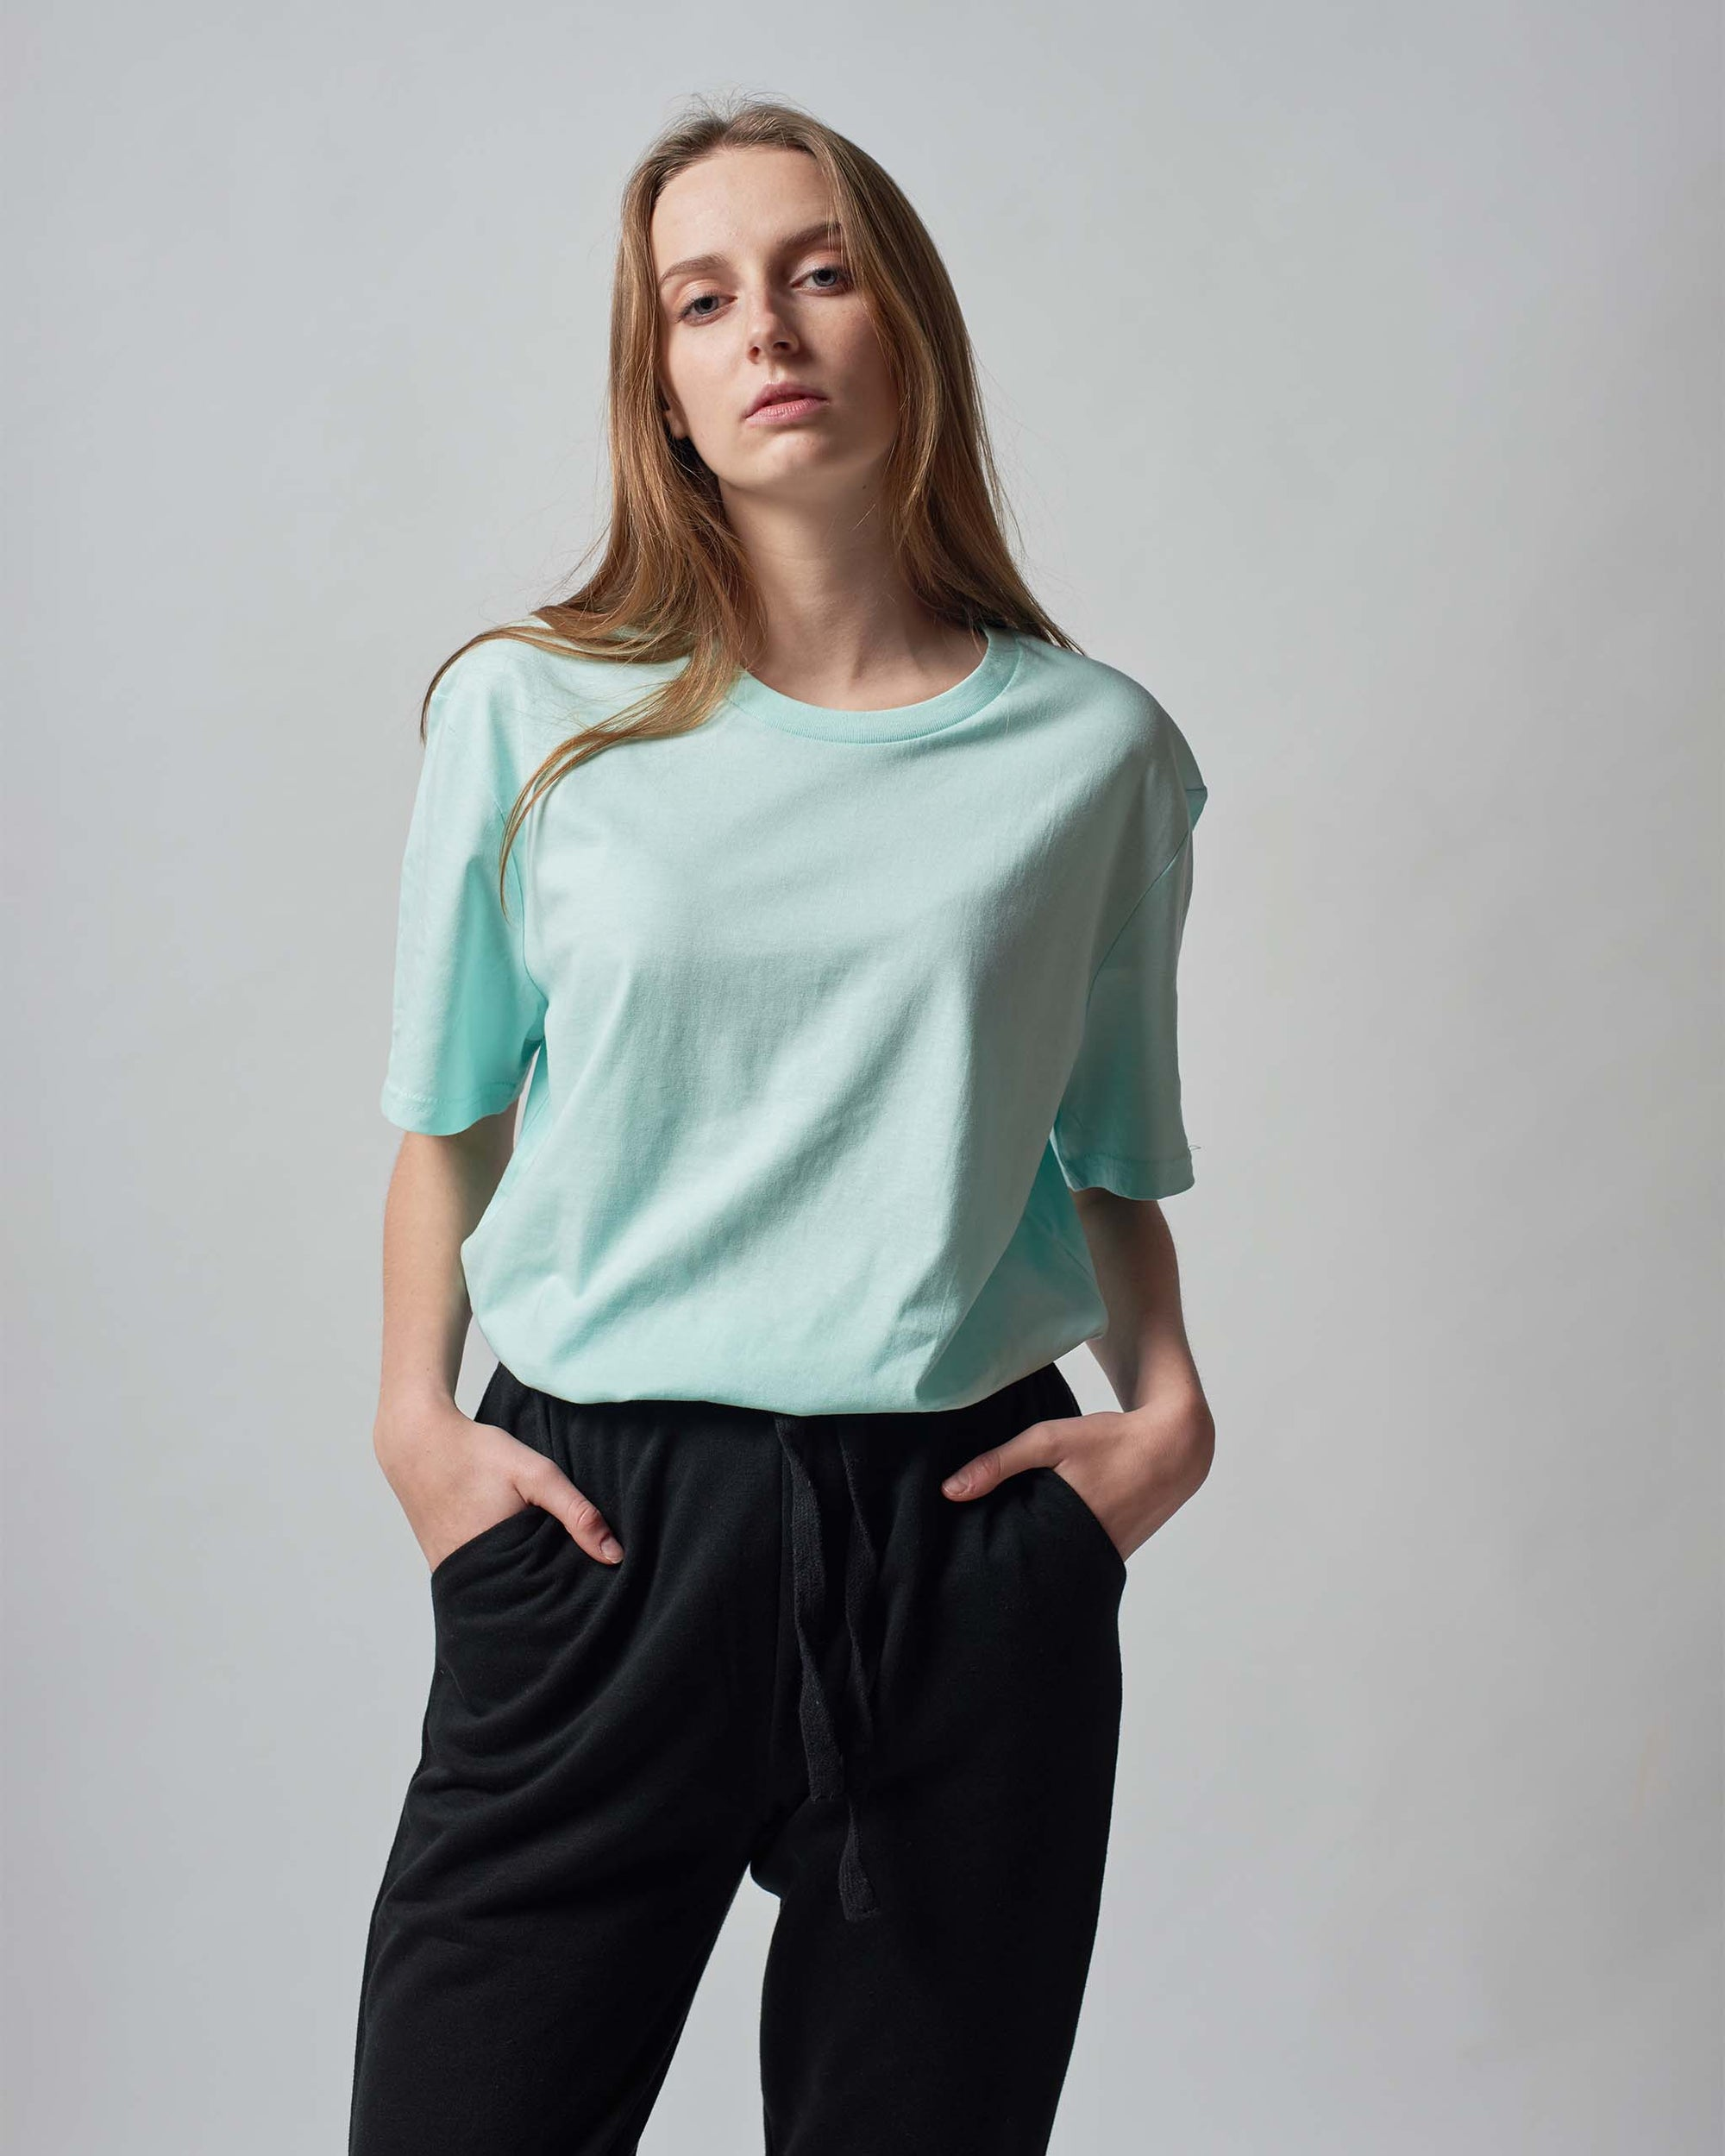 womens-tshirt-mint-green